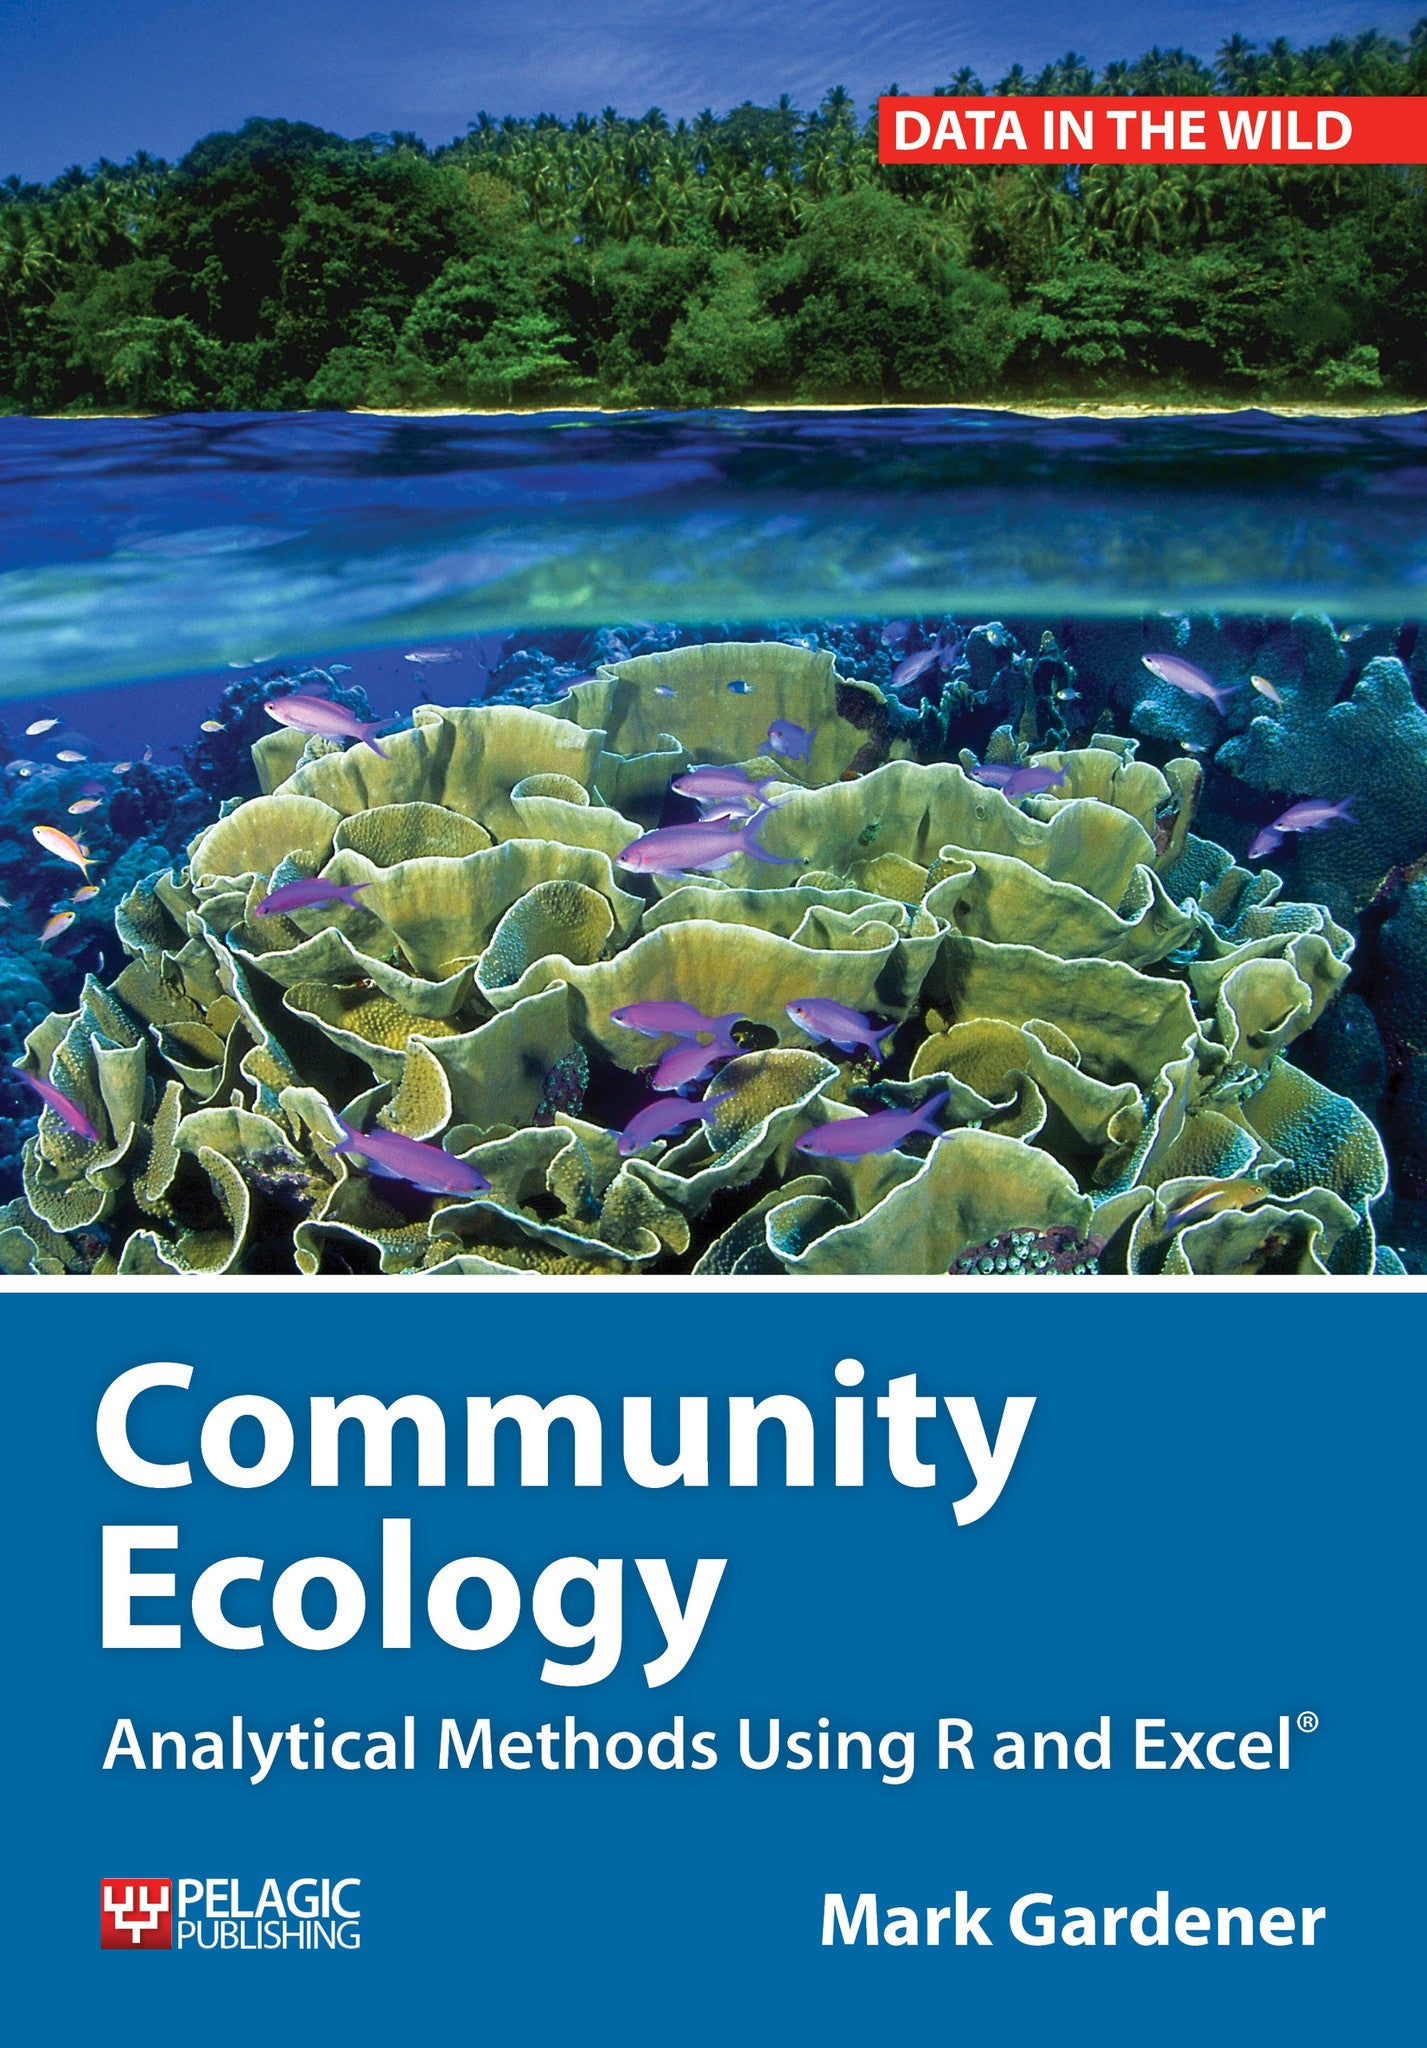 Community Ecology - Pelagic Publishing